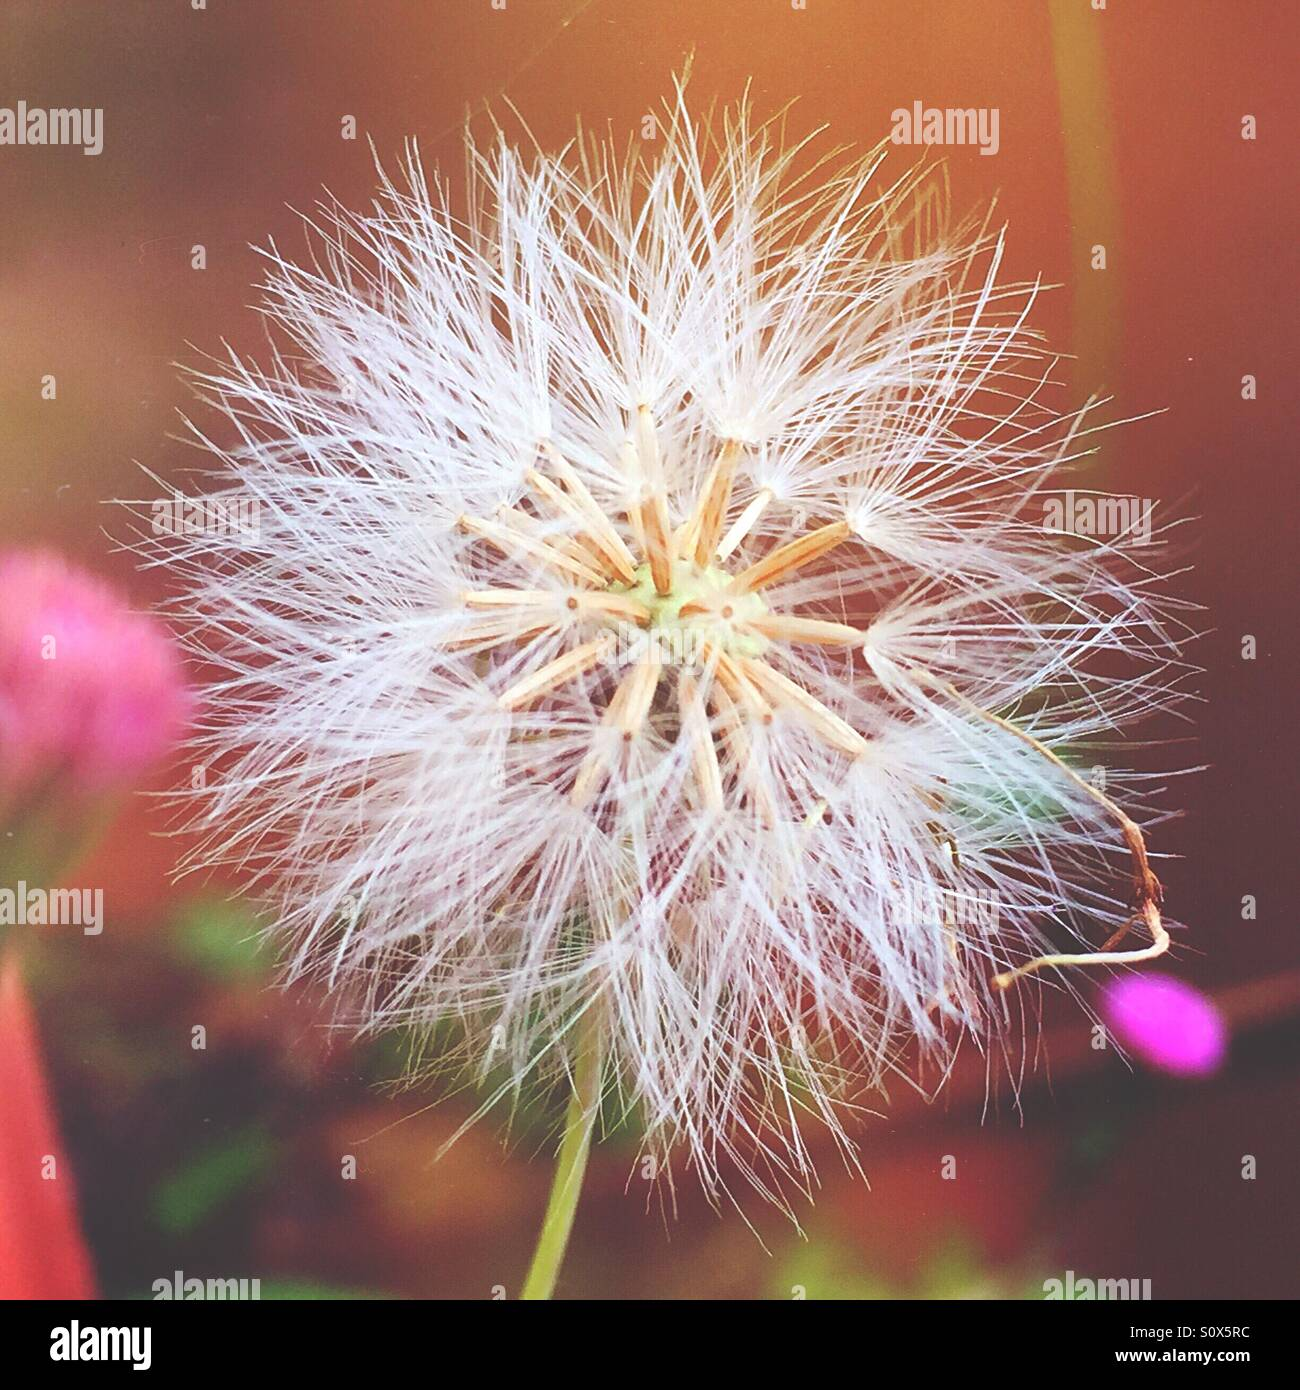 The flower start to bloom - Stock Image